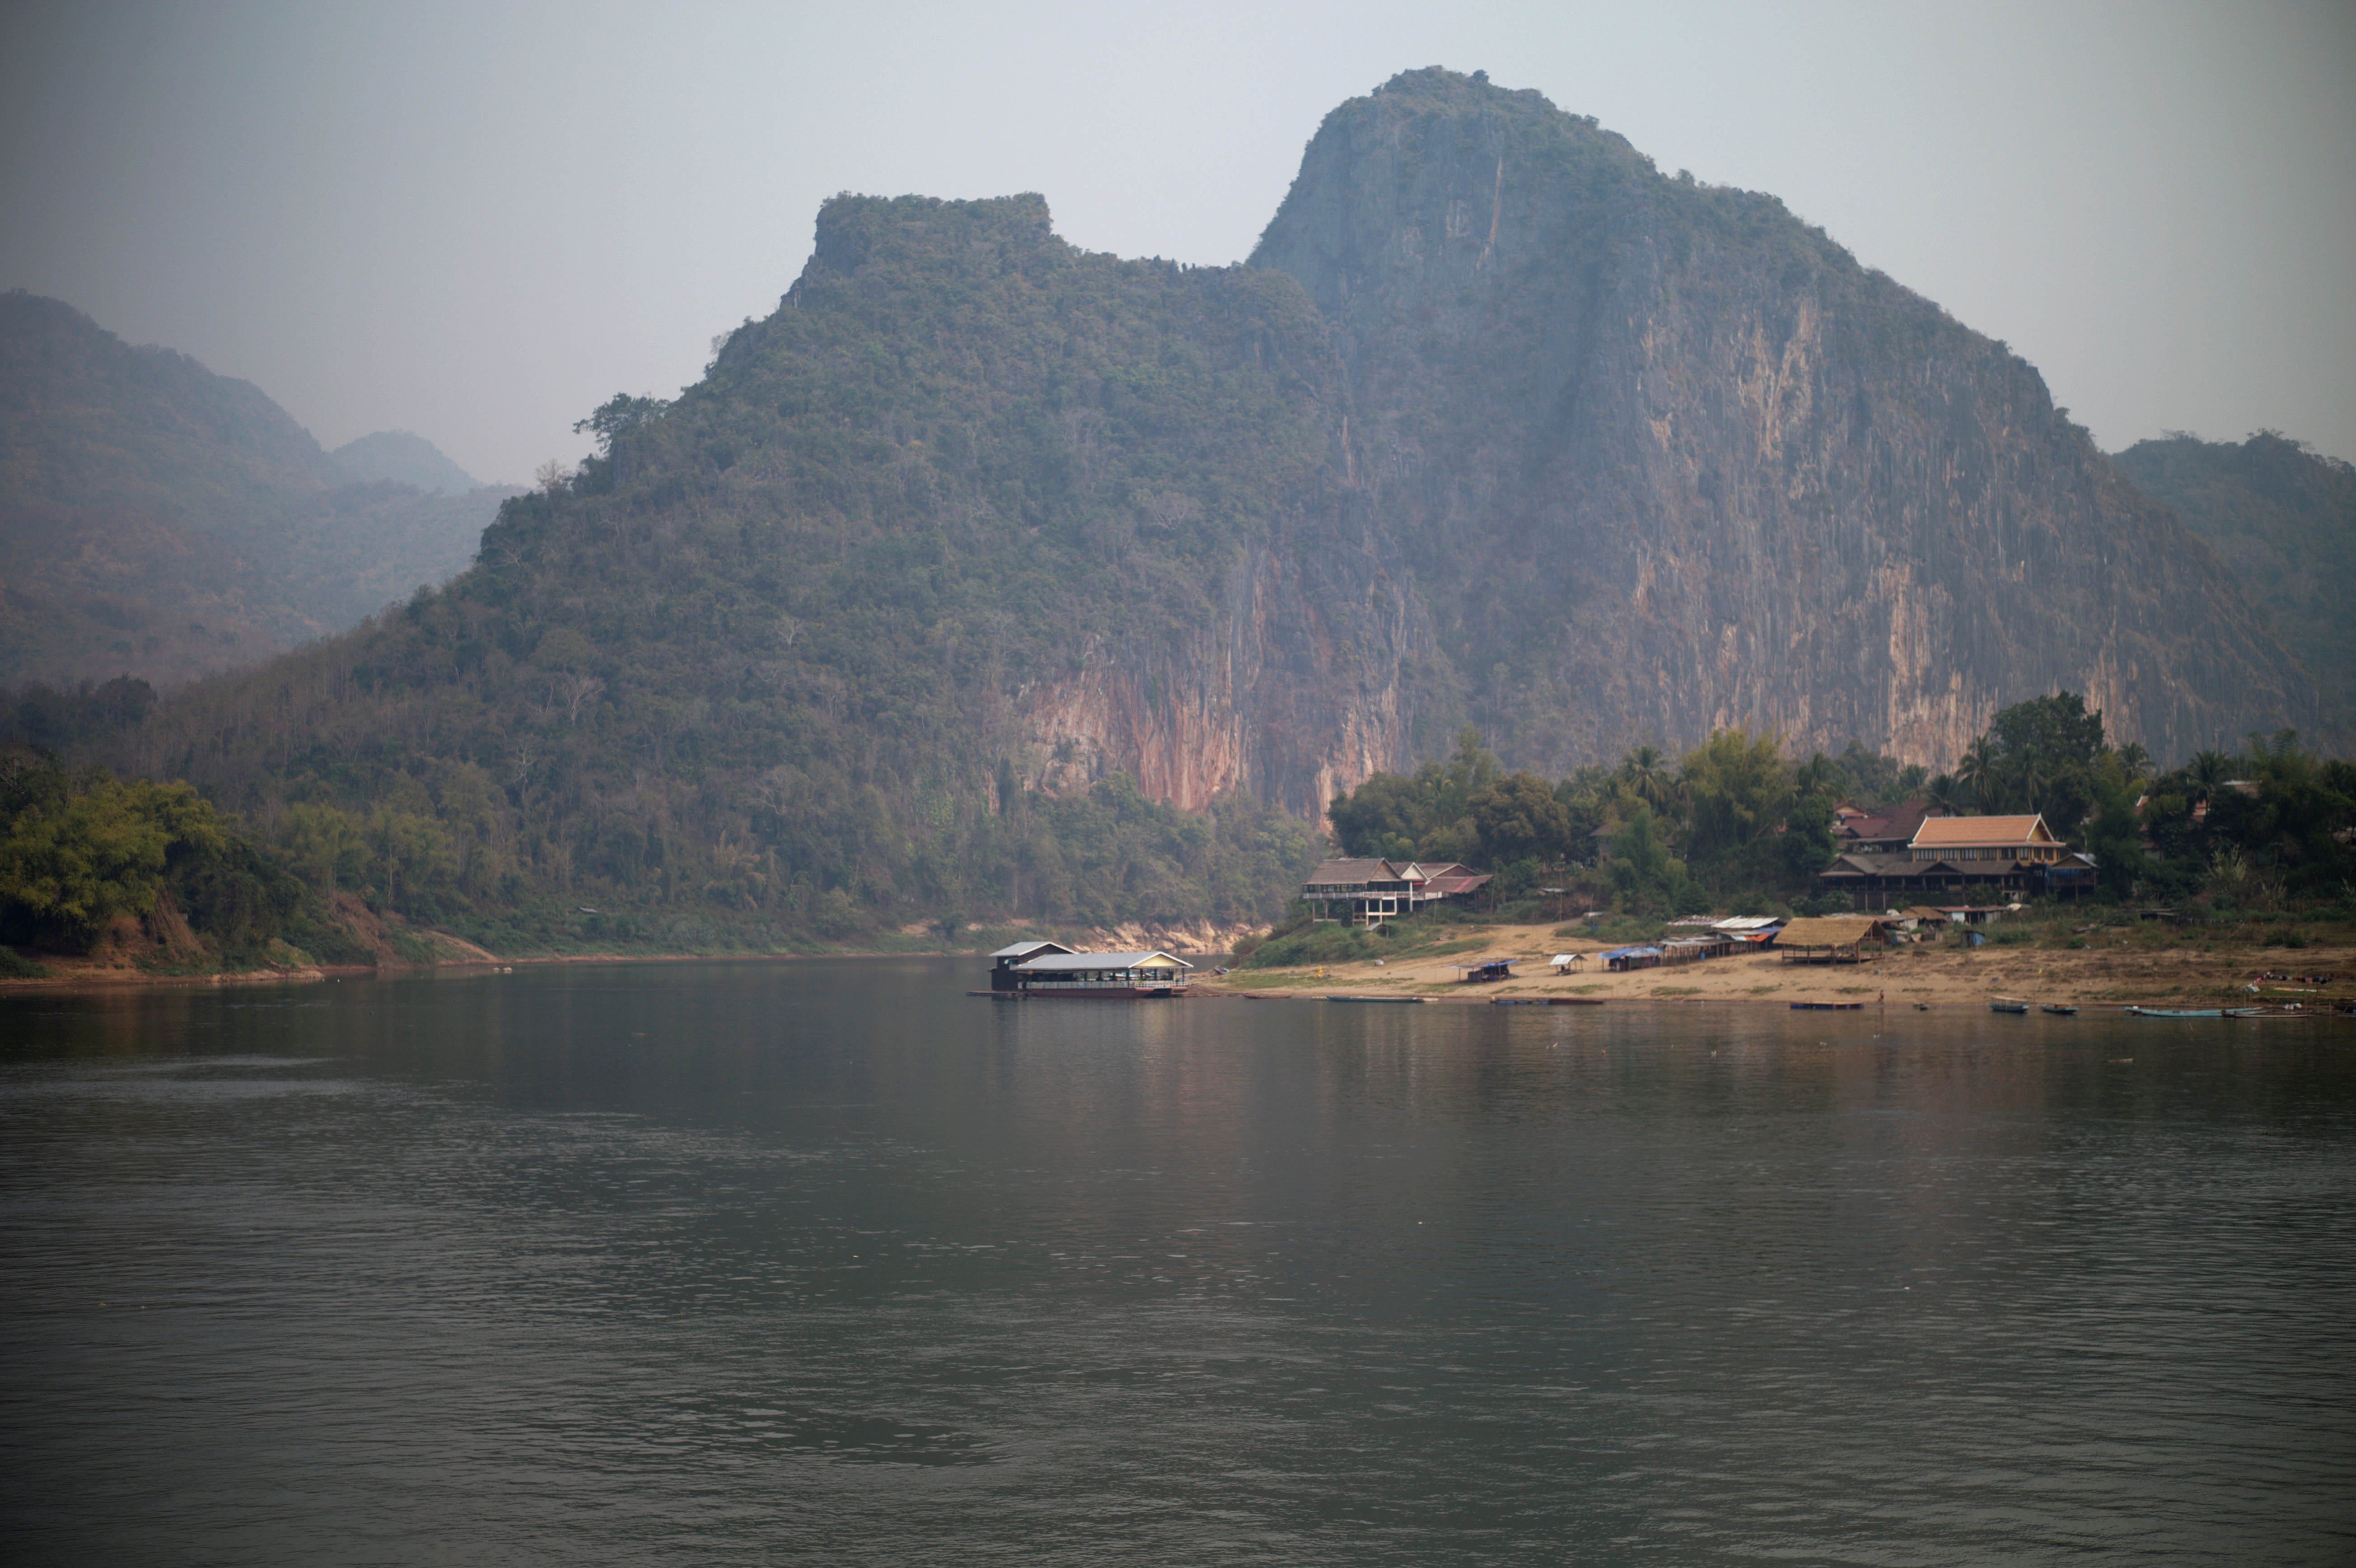 A general view of the future site of the Luang Prabang dam is seen on the Mekong River outskirt of Luang Prabang province, Laos, February 5, 2020. REUTERS/Panu Wongcha-um/File Photo